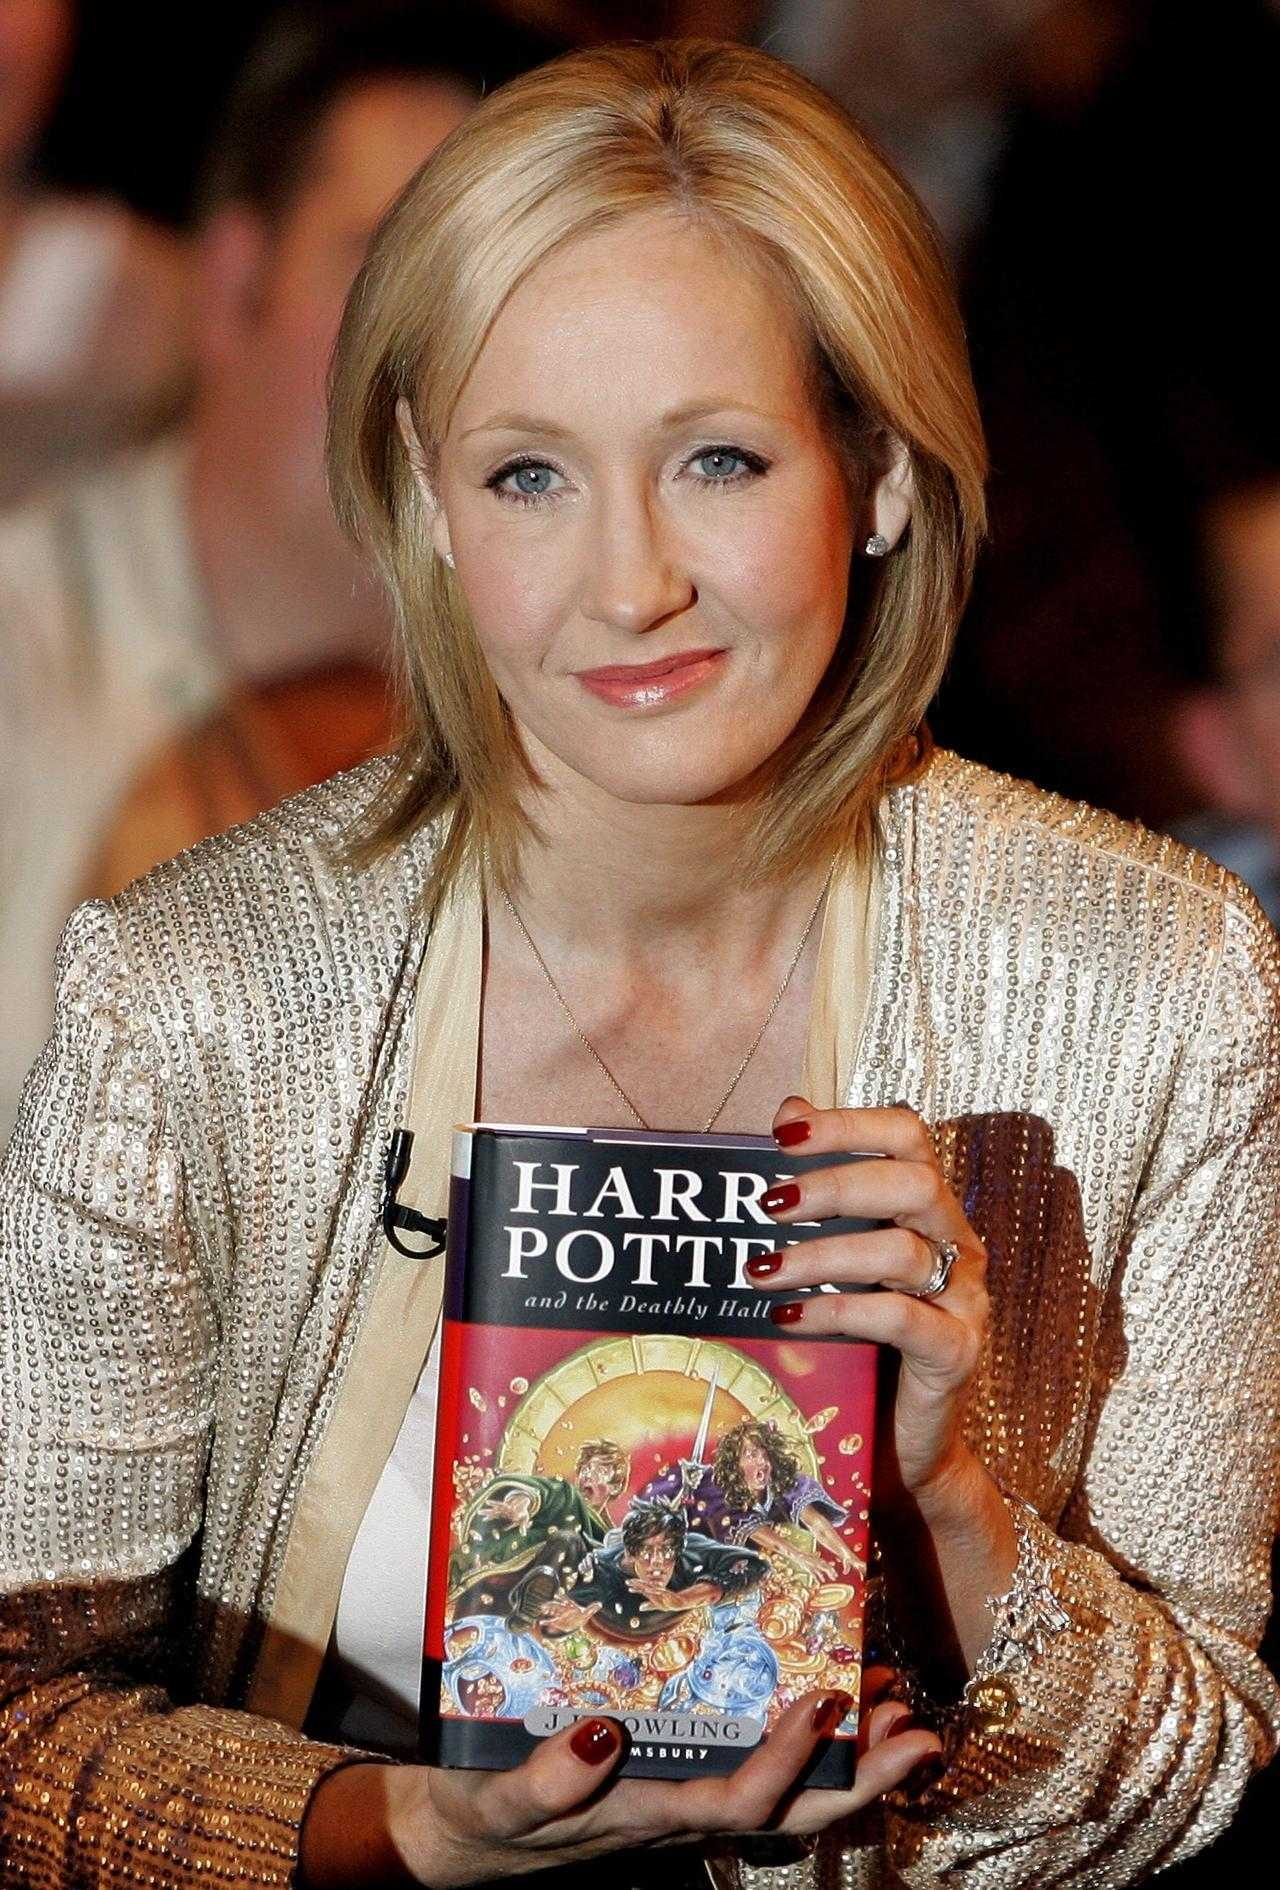 Jk Rowling Proves Once Again Why She's The Best | JK Rowling